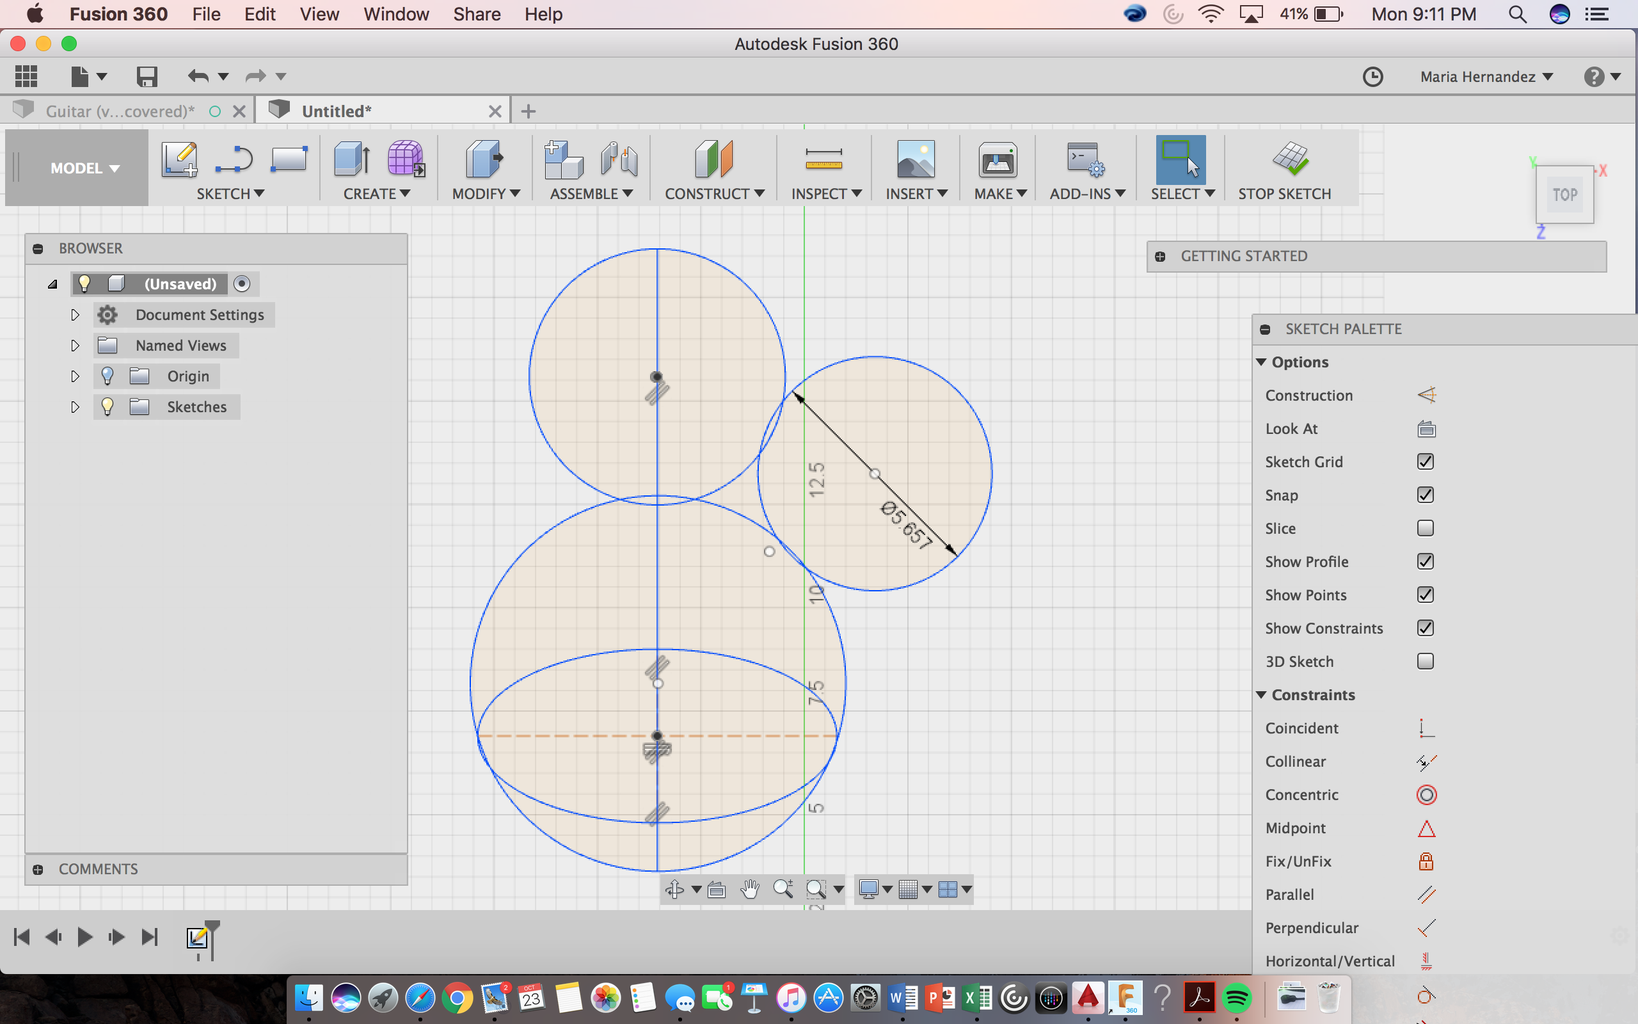 Design Your Object in Fusion 360